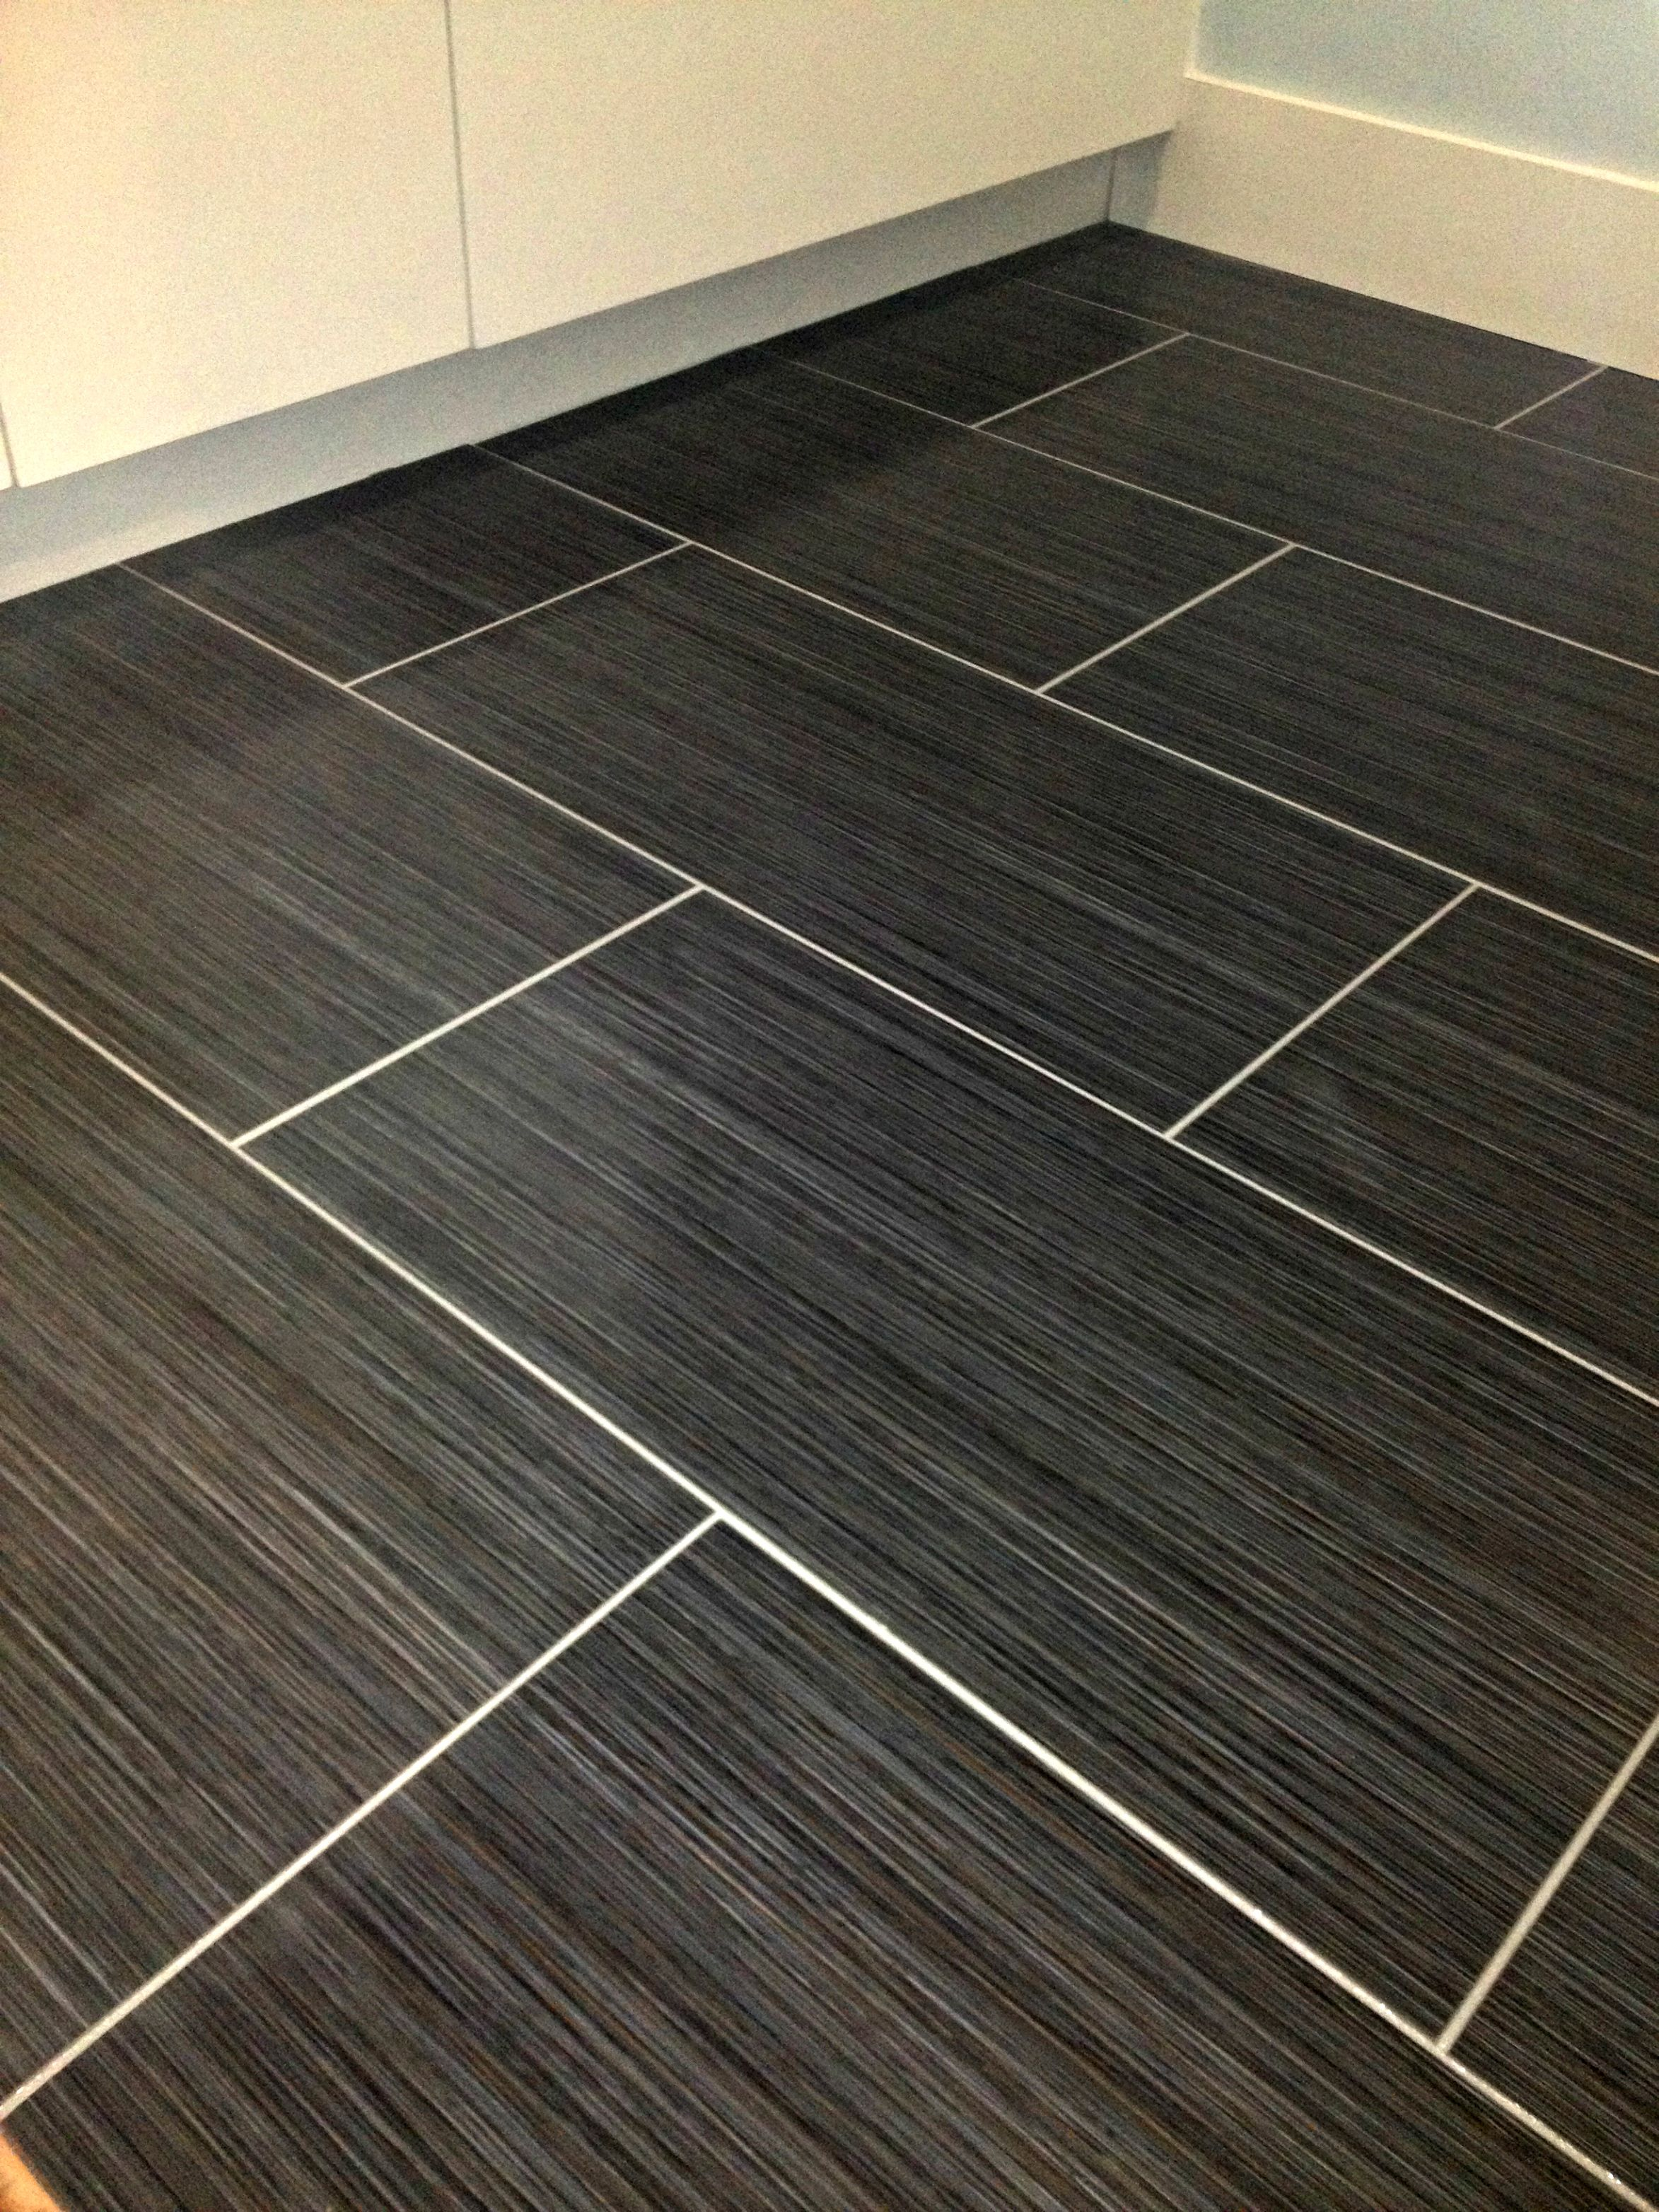 Dark Tile Flooring Endearing Floor With Dark Tile And Light Grout Our Work  Tile 2017